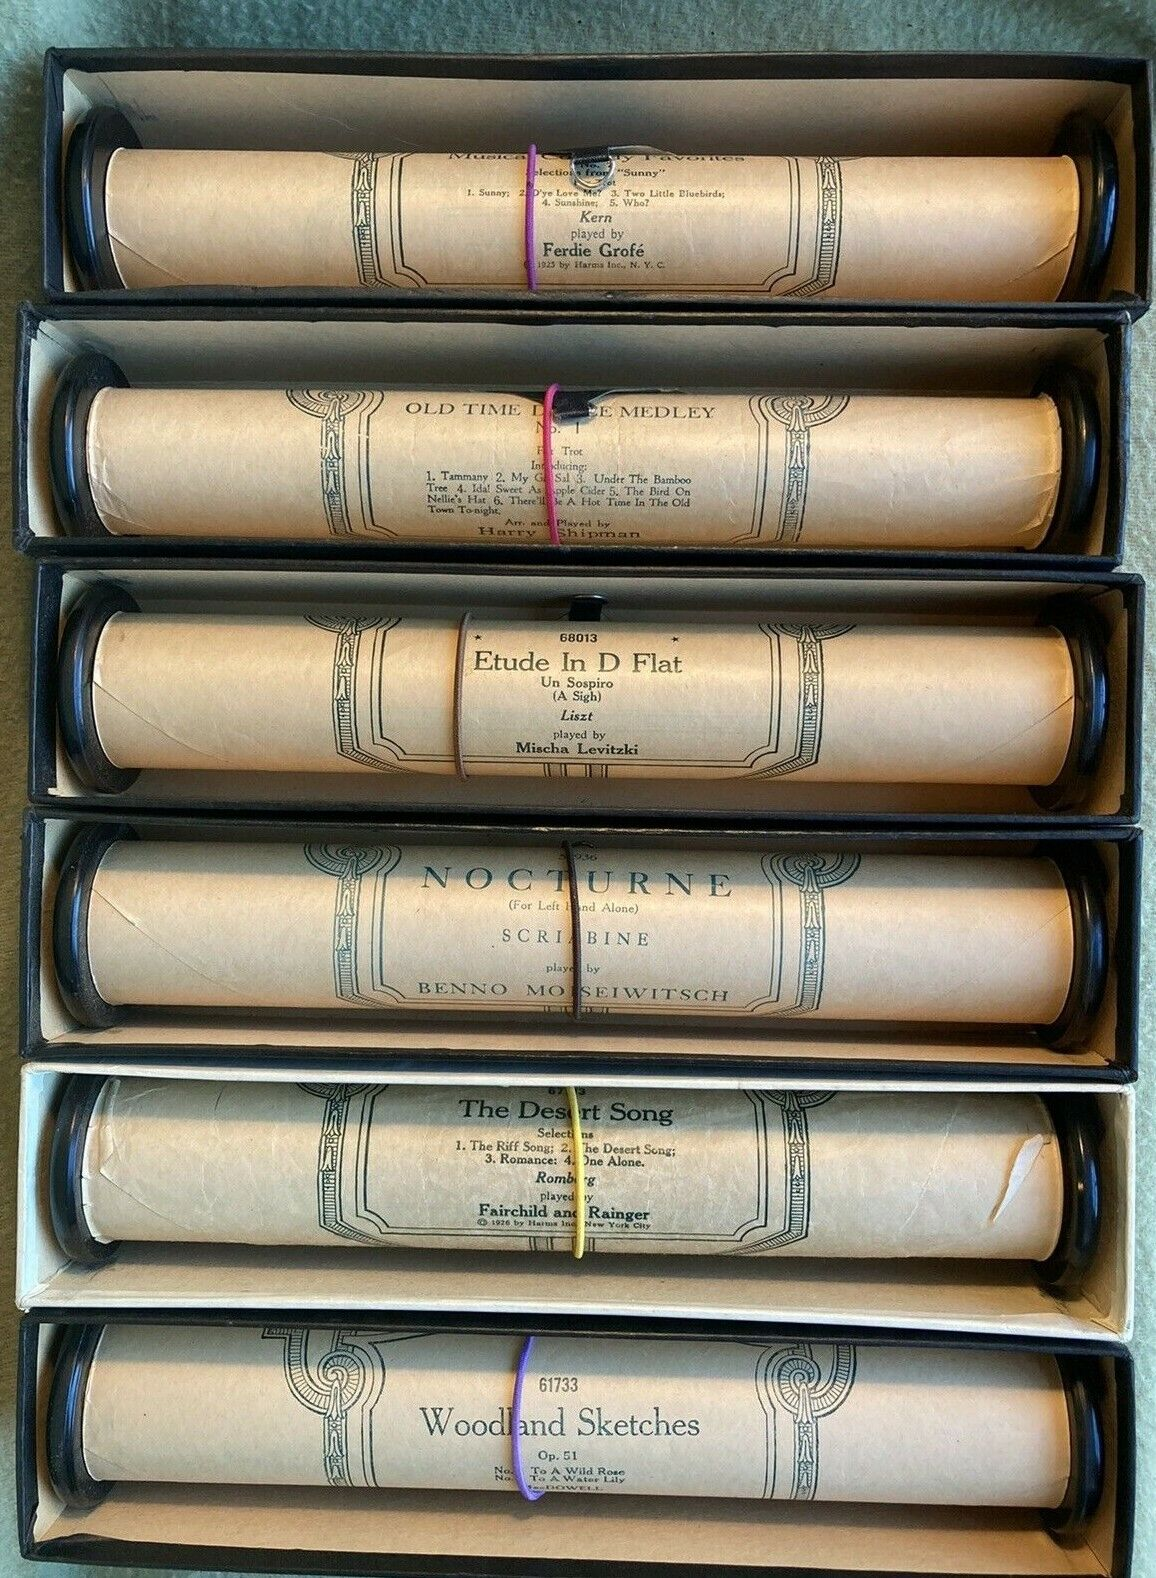 Vintage Ampico Player Piano Rolls, Previously Played - Bundle Of 6 Rolls - $71.00